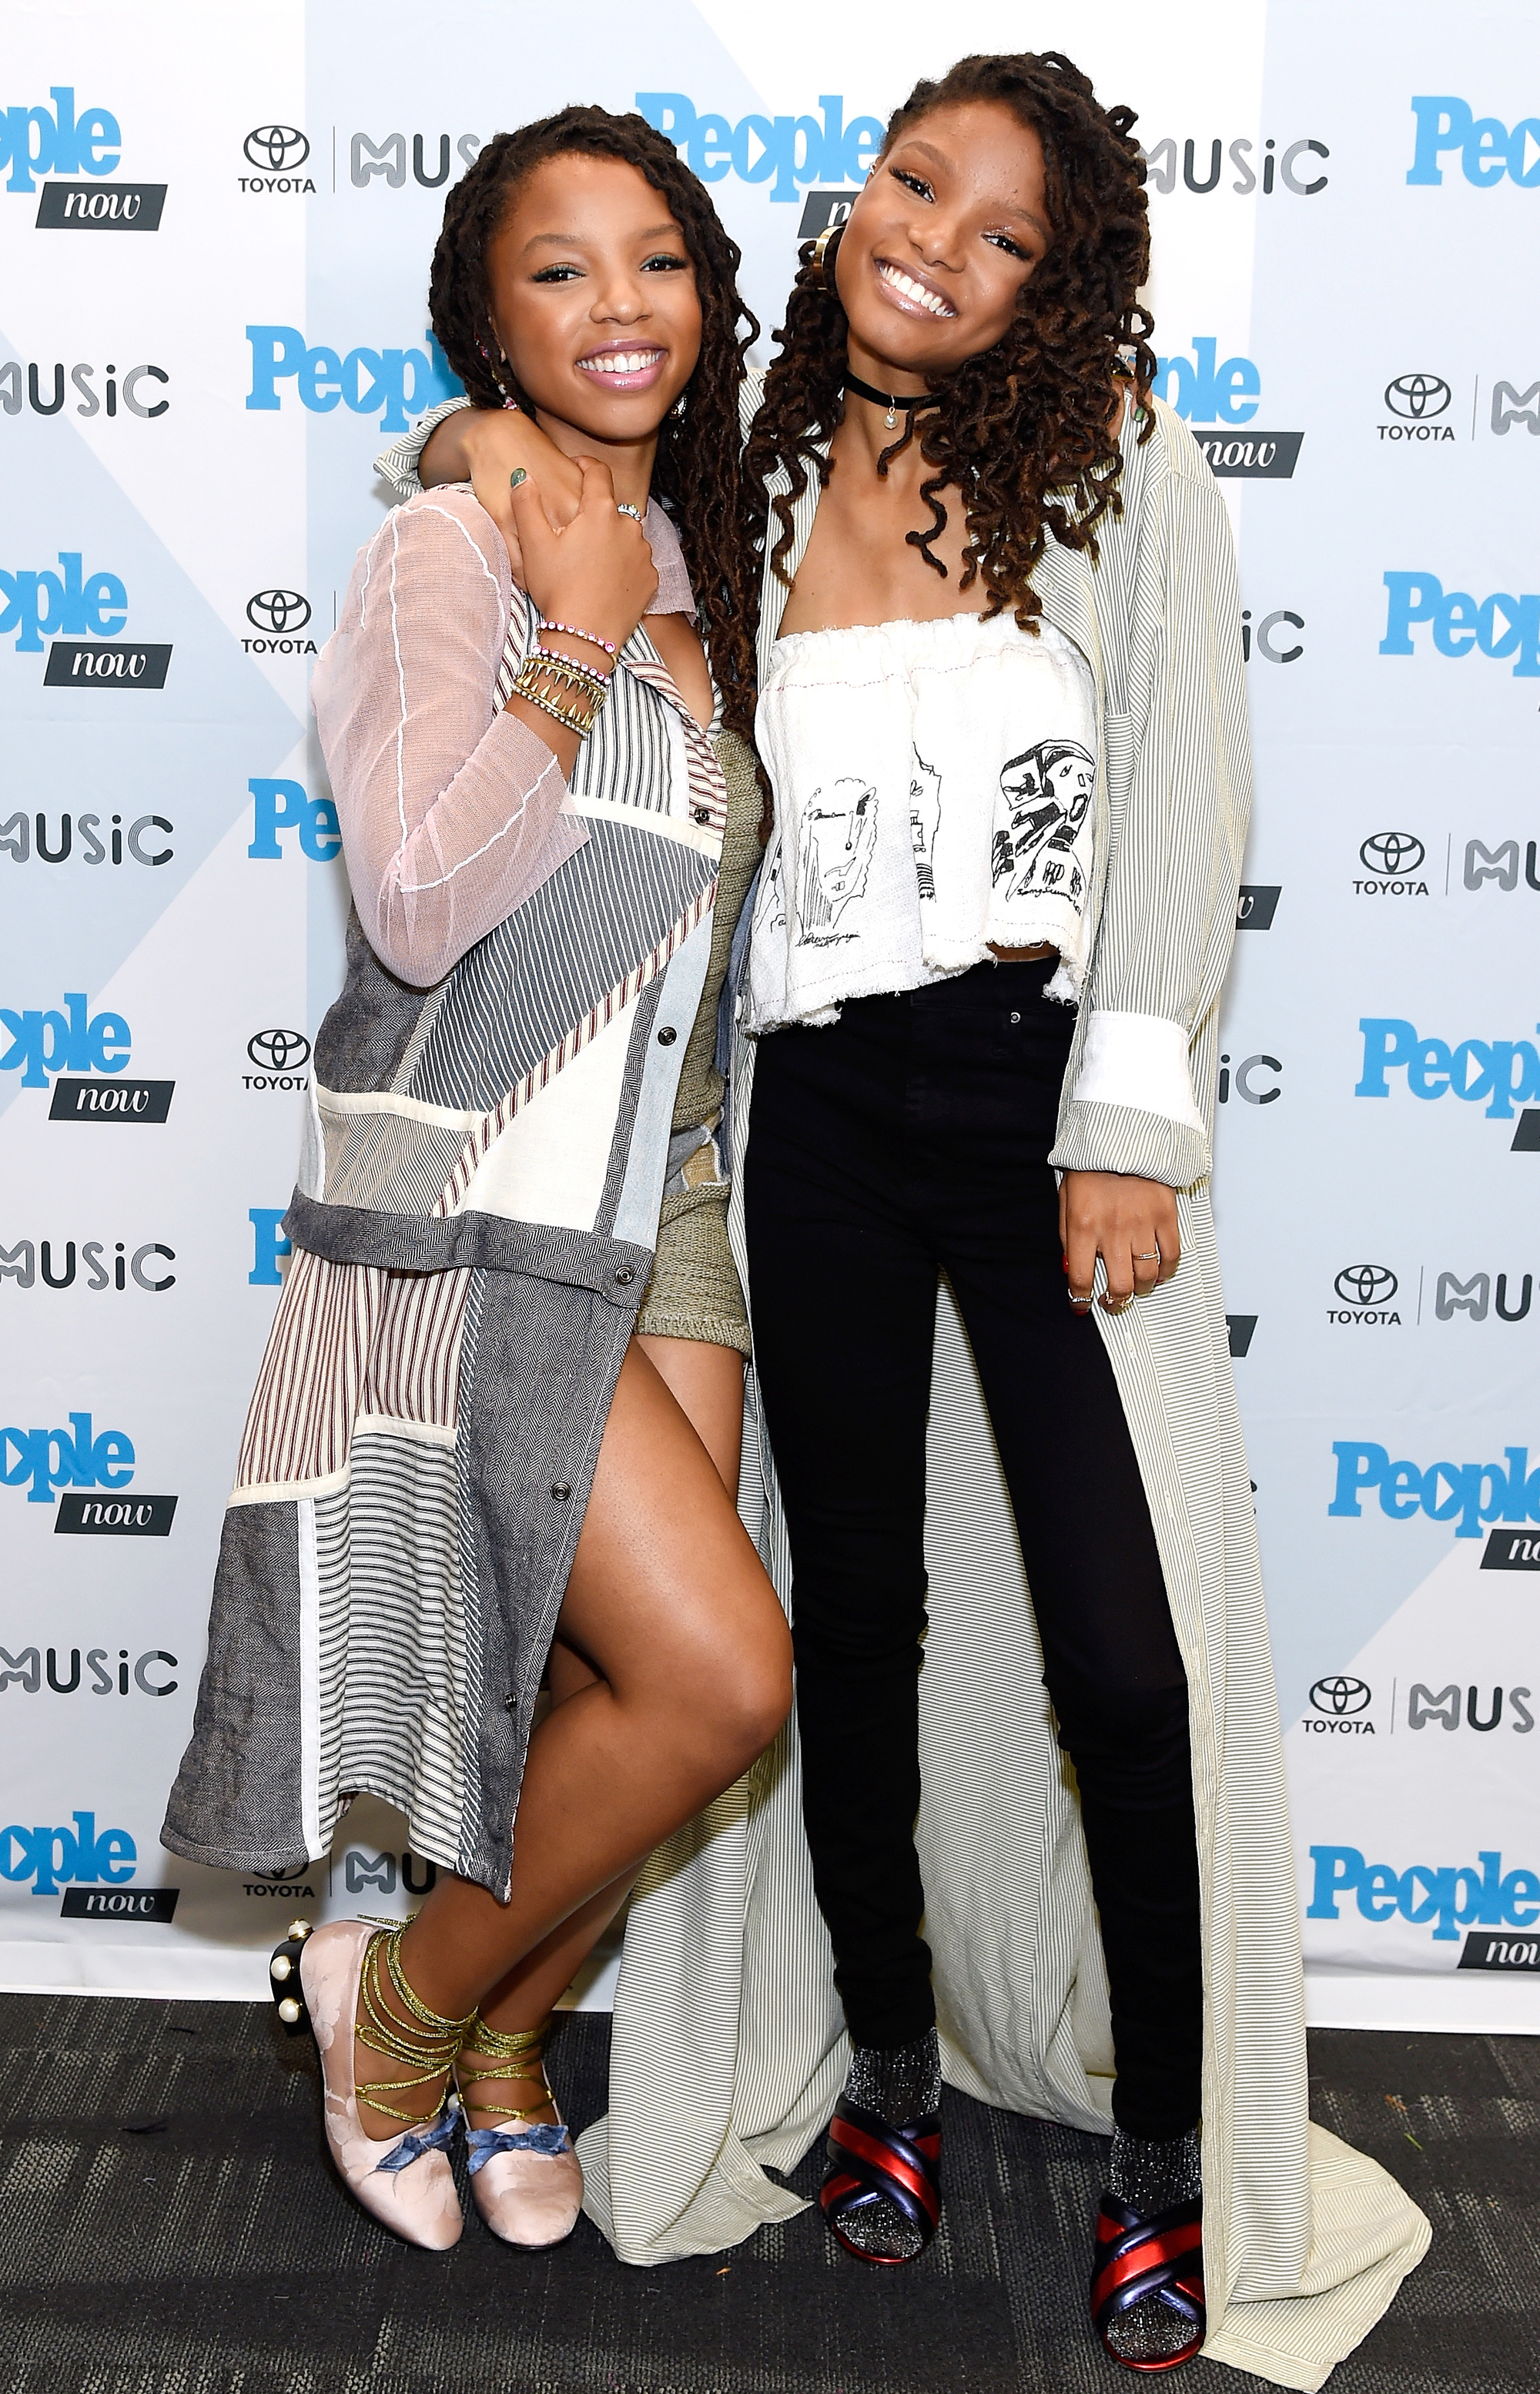 Chloe X Halle People Now Concert Embed